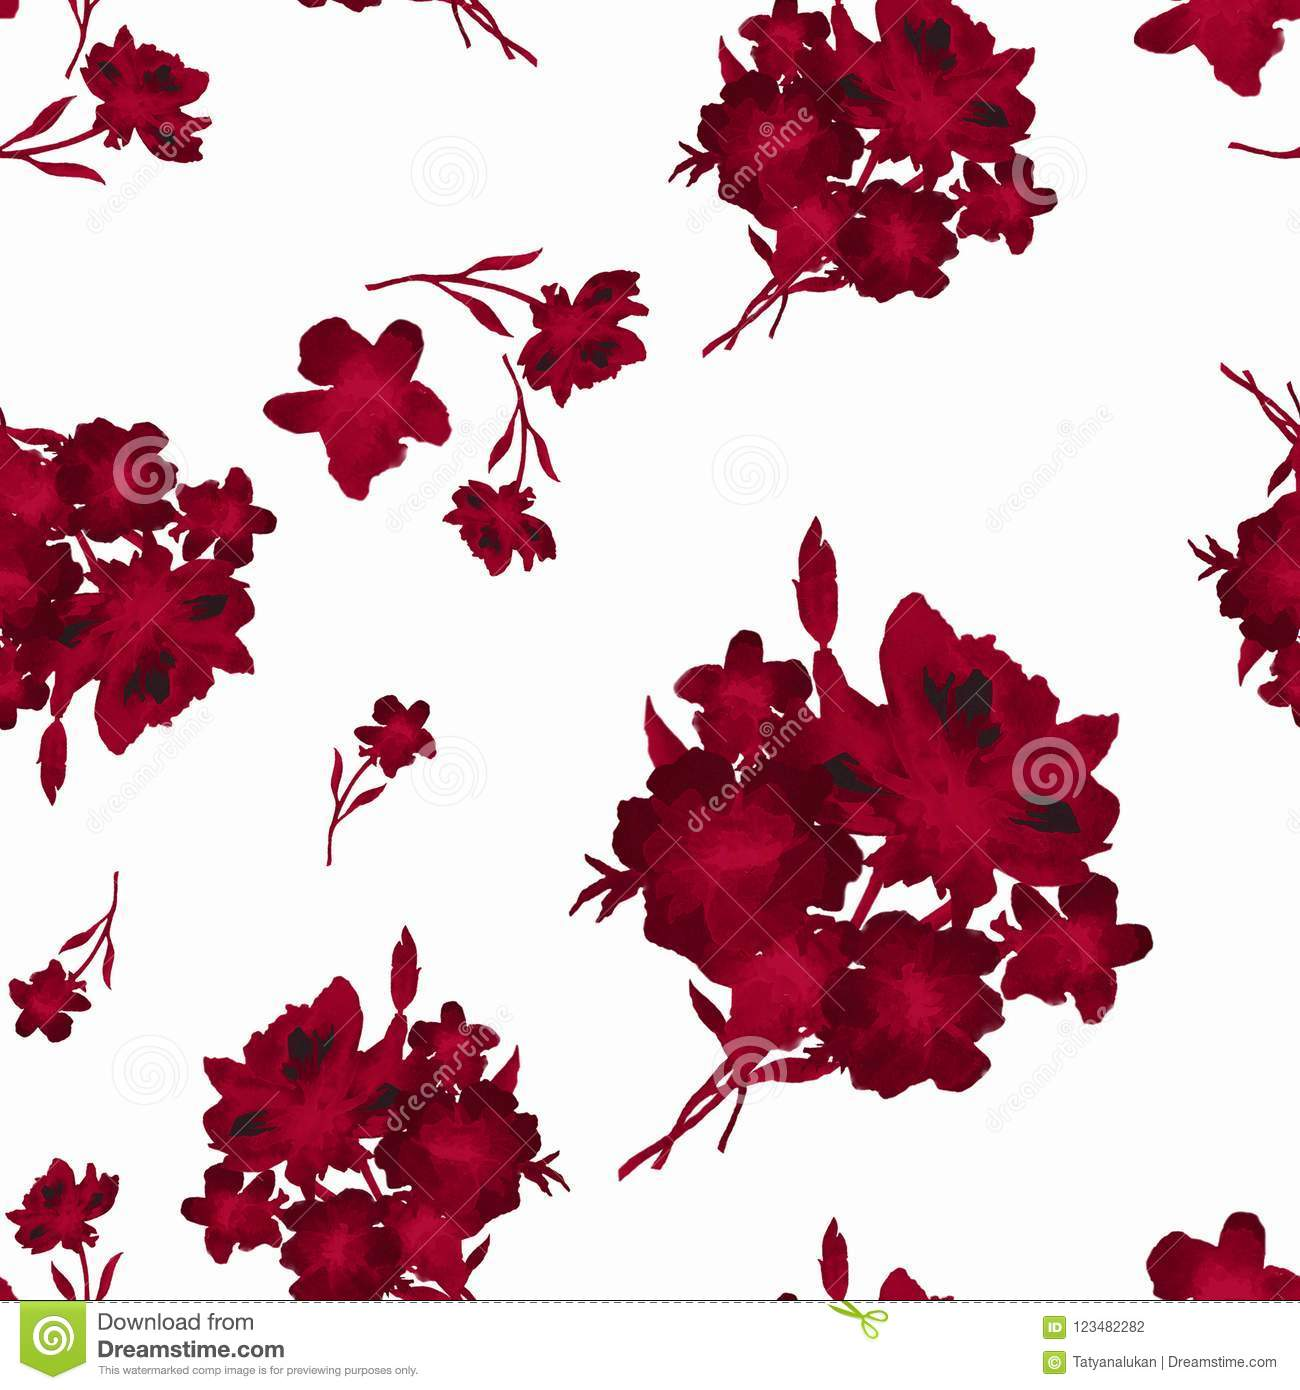 Burgundy And White Background Kampa Luckincsolutions Org